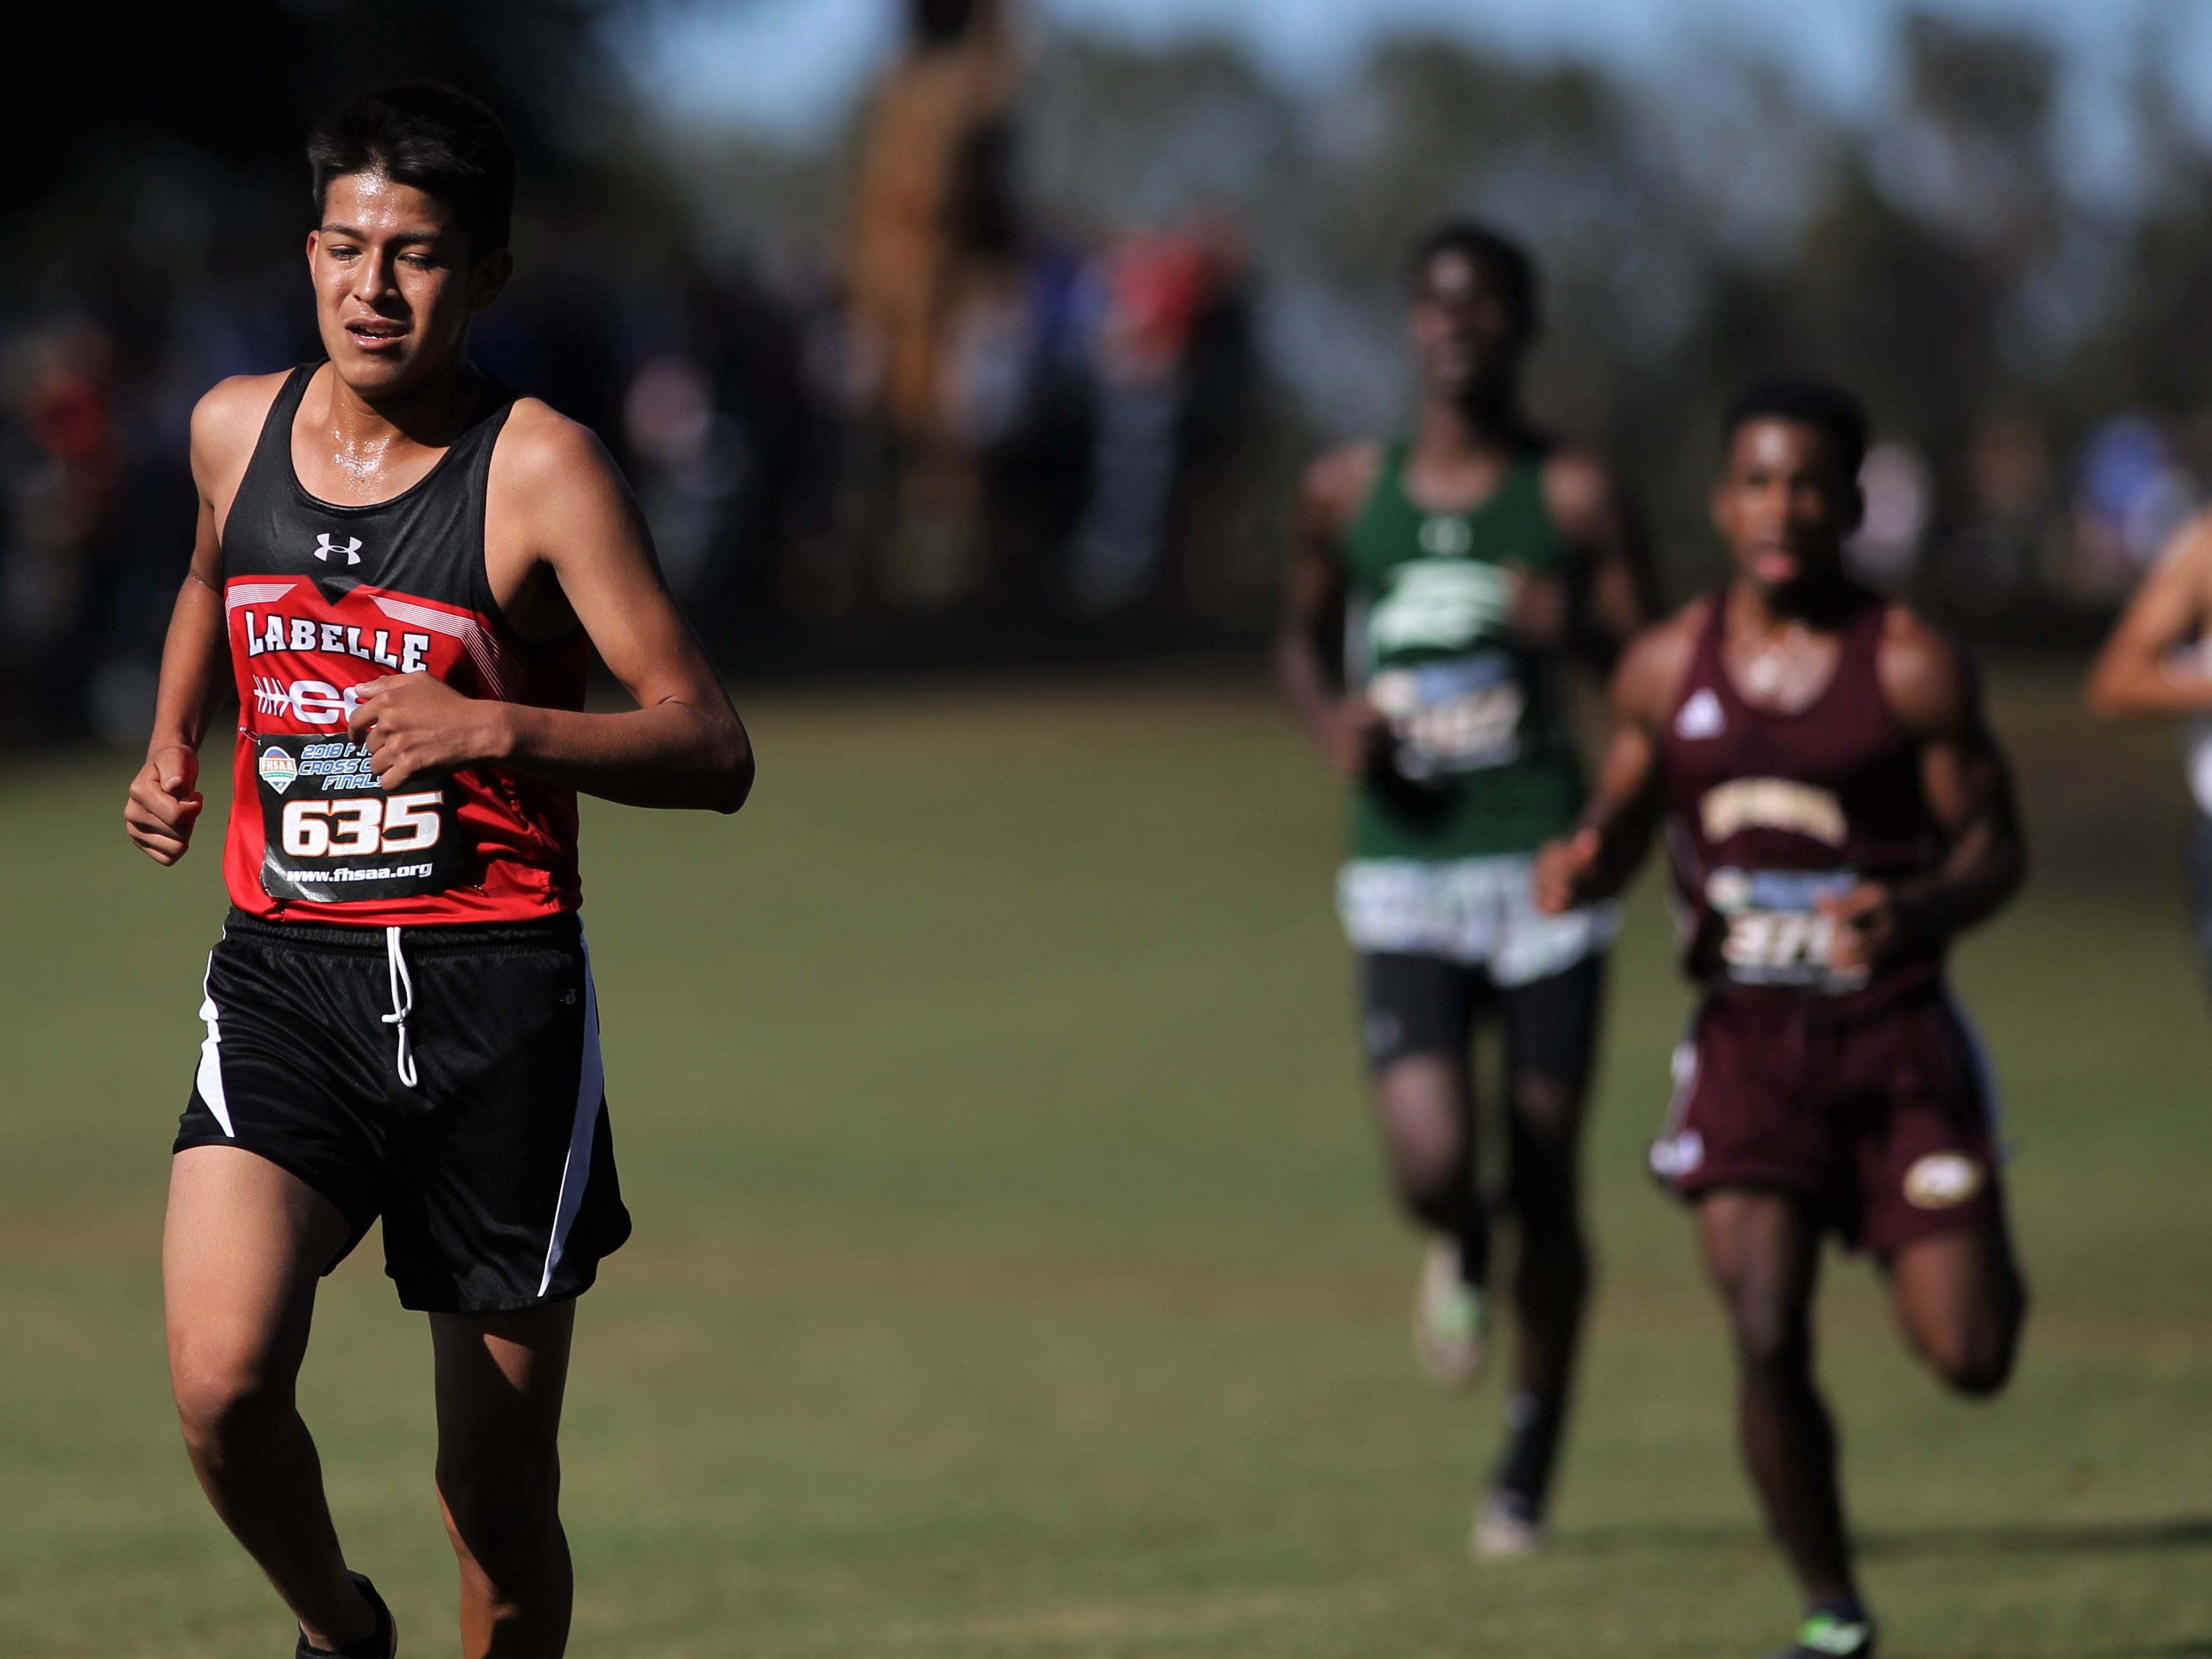 LaBelle's Brayan Beltran-Reyes races in the Class 2A boys race of the FHSAA Cross Country State Championships at Apalachee Regional Park in Tallahassee, Saturday, Nov. 11, 2018.